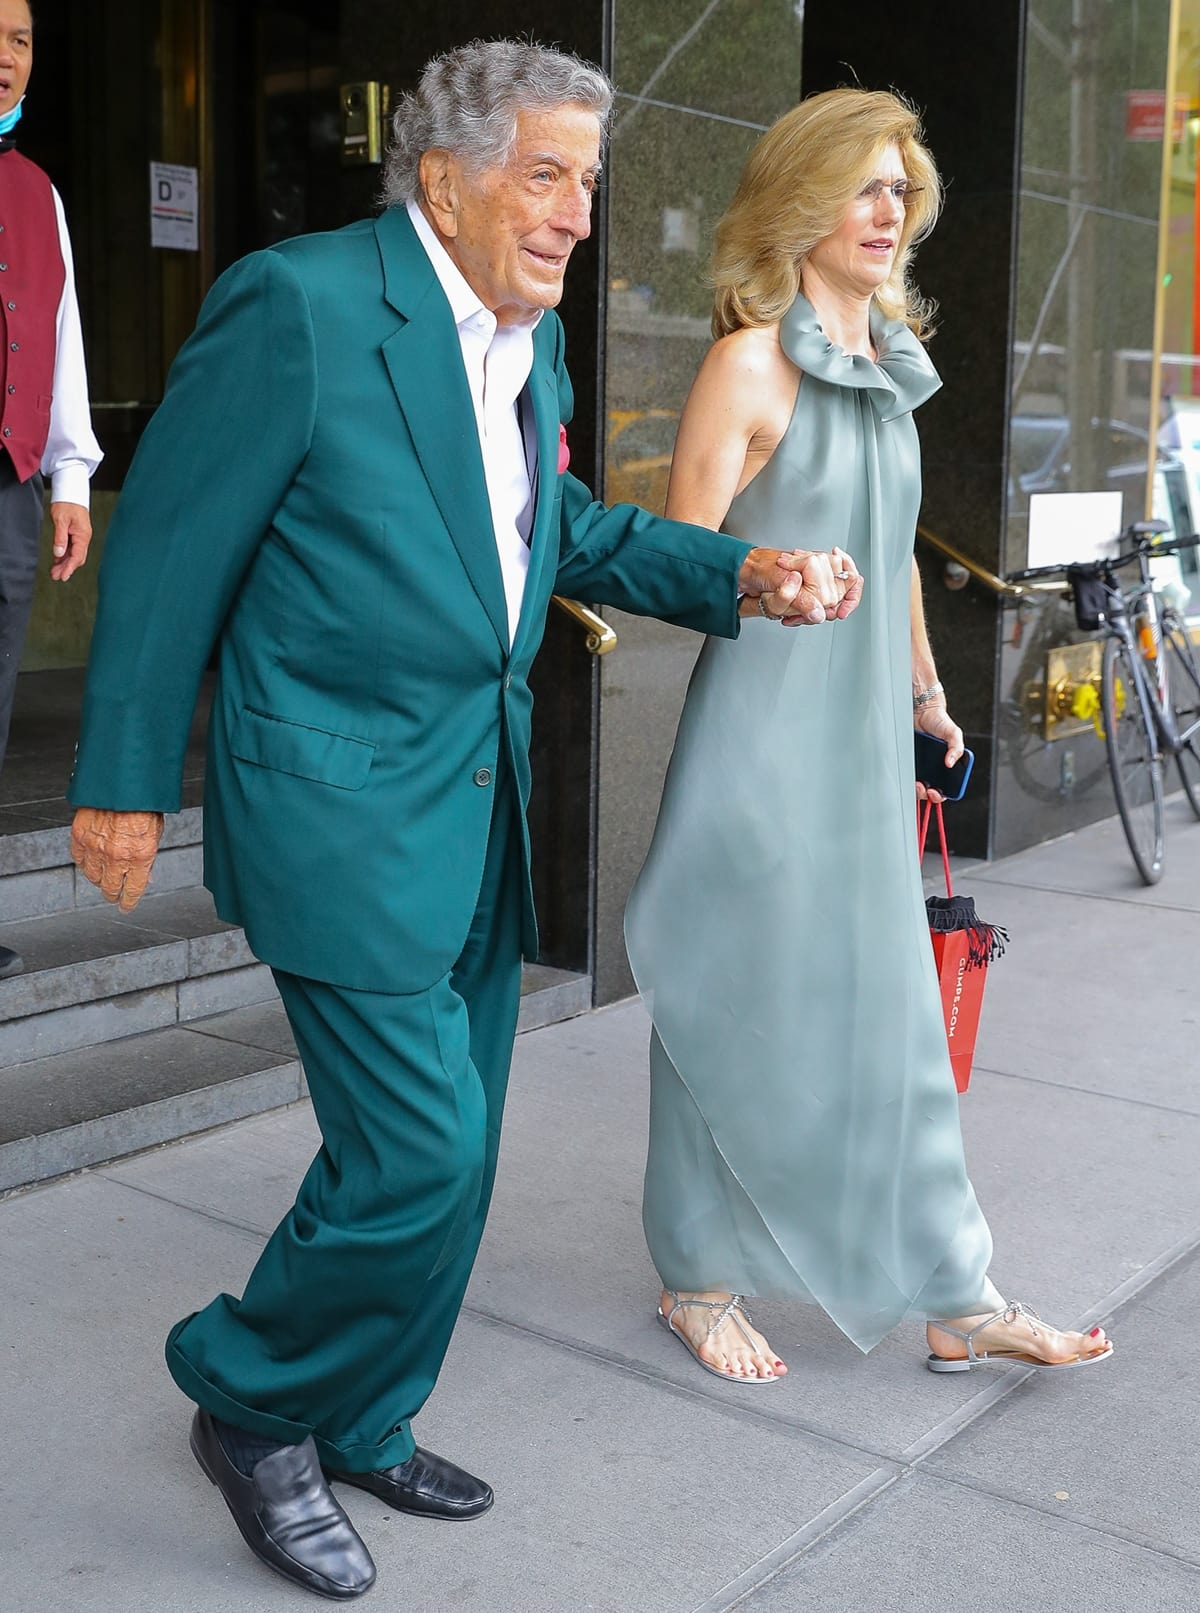 Tony Bennett and his wife Susan Crow heading to performance with Lady Gaga